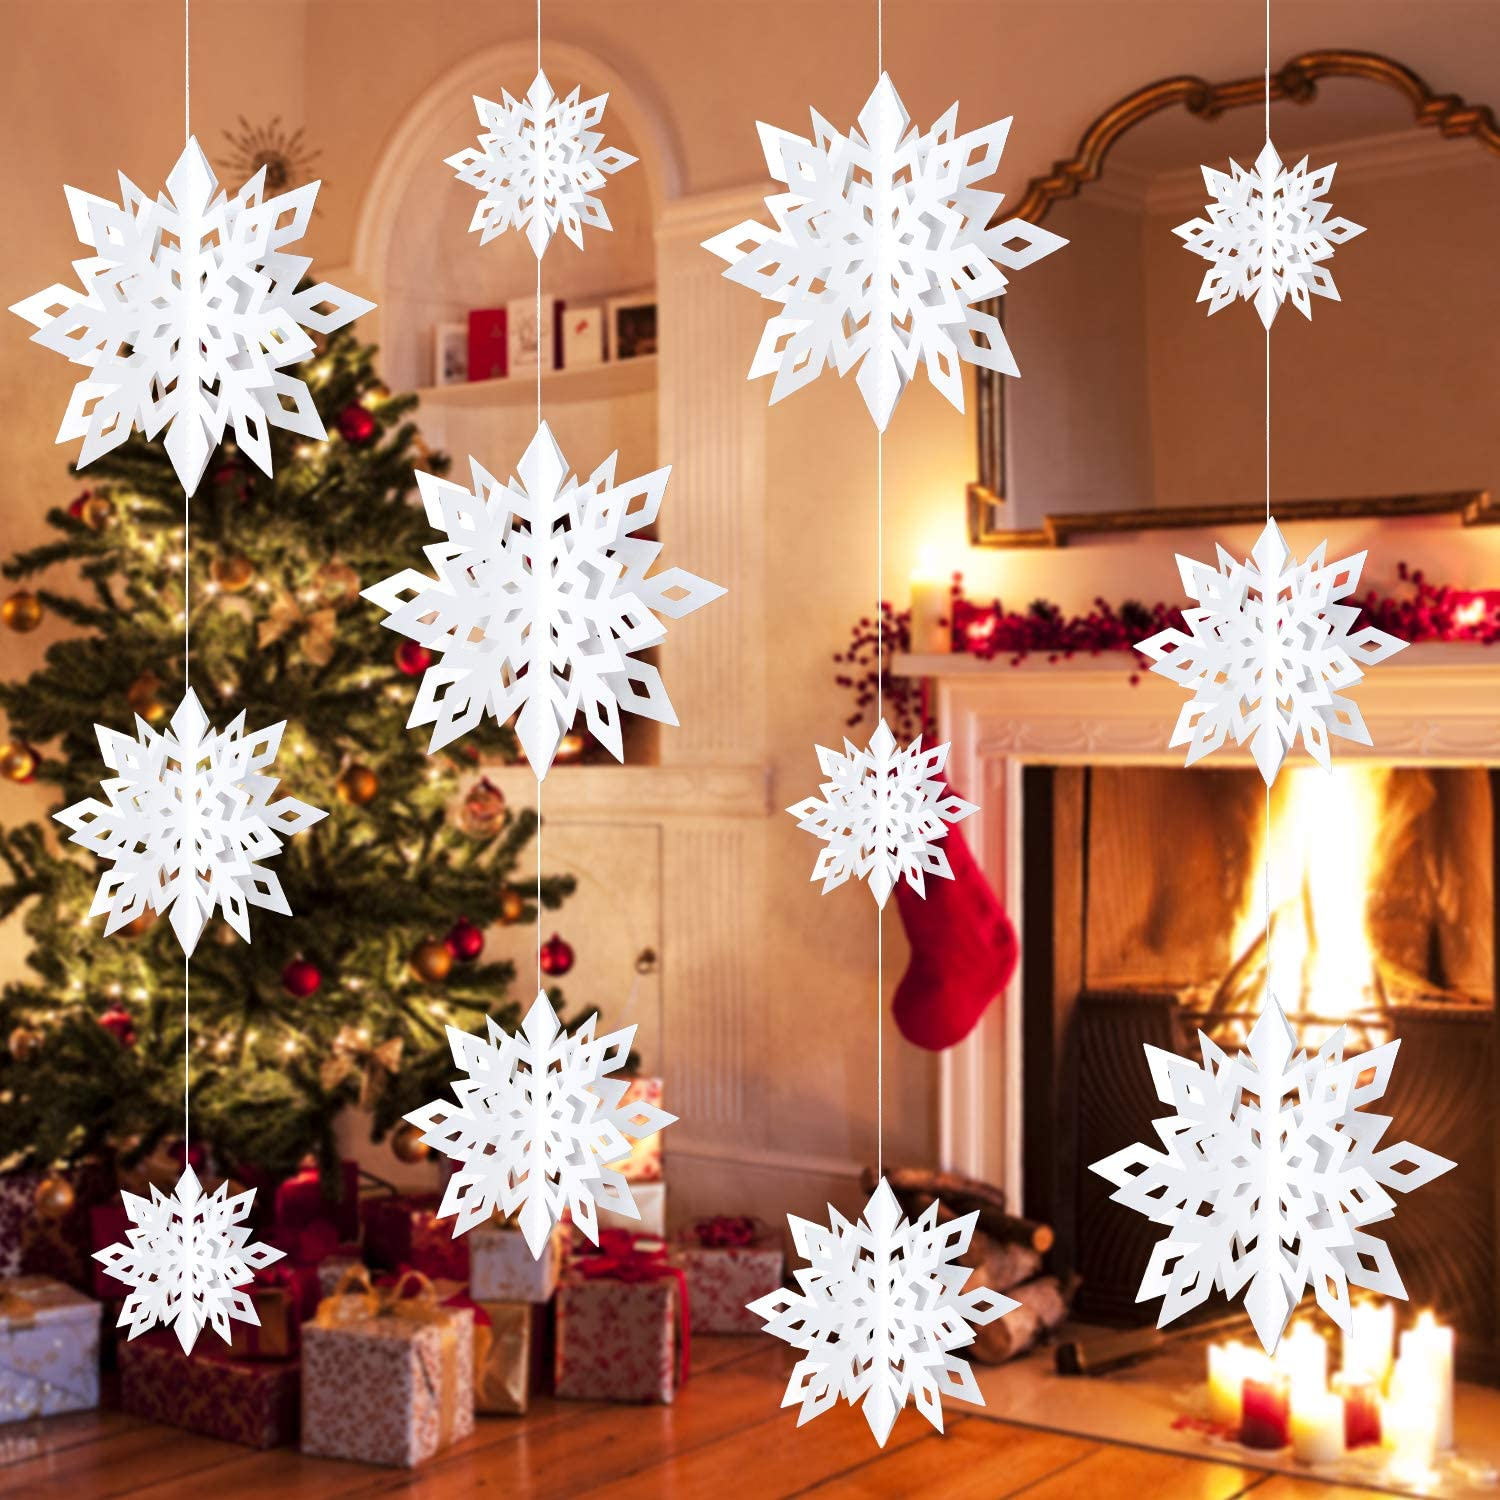 BININBOX Christmas Hanging Snowflake Decorations, 12 PCS Winter 3D Glittery White Snowflakes Garland for Window Xmas Trees Decor, Christmas New Year Party Winter Wonderland Decoration